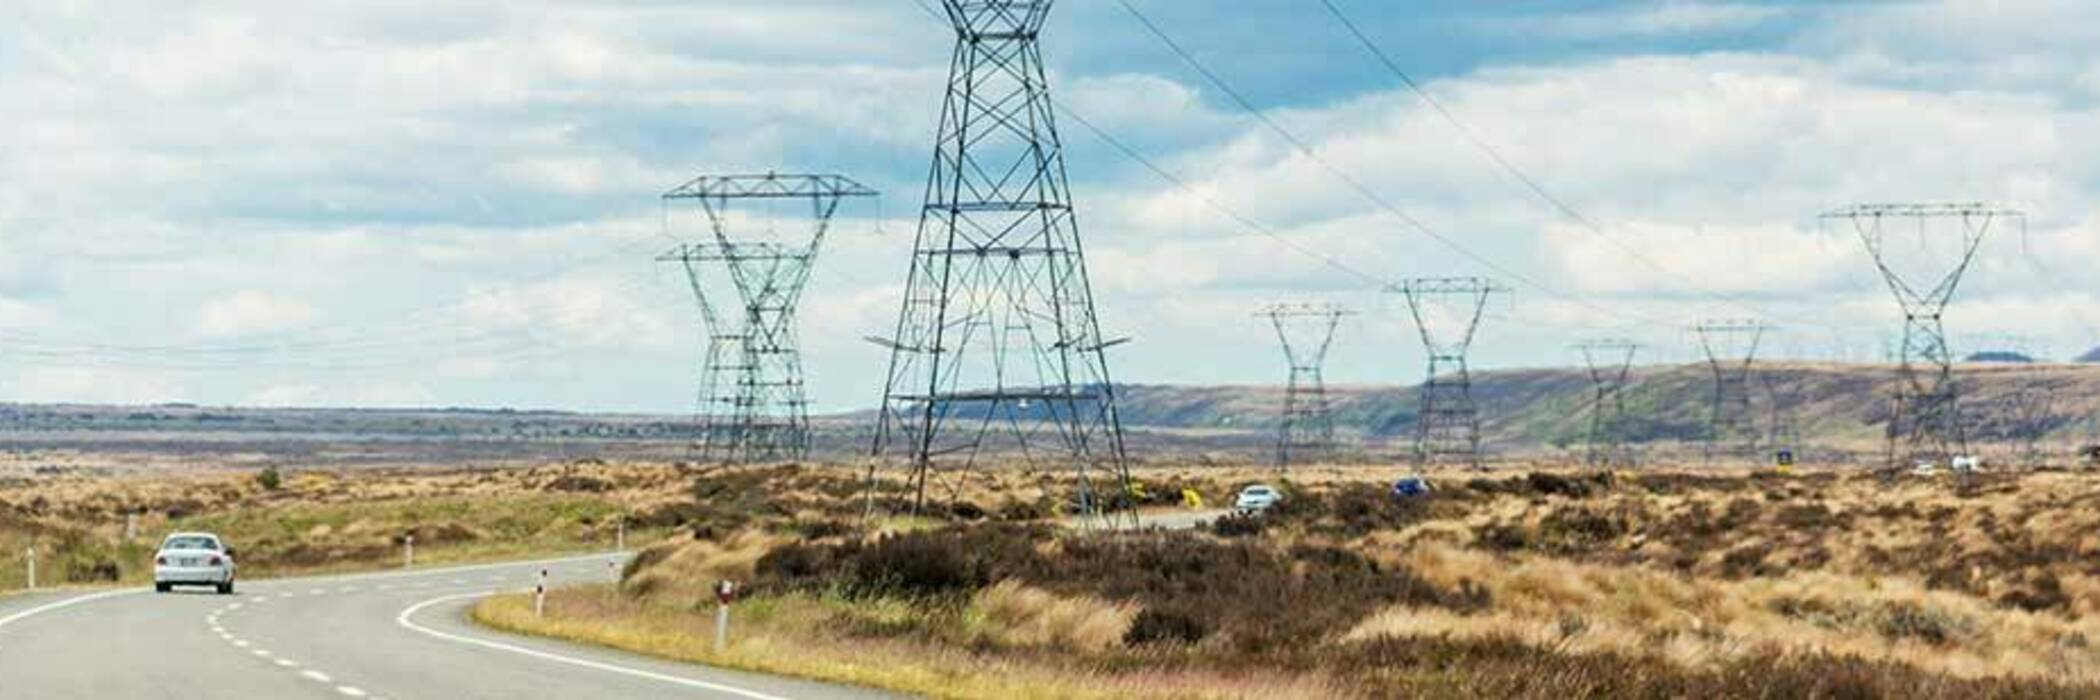 Electricity pylons in New Zealand.